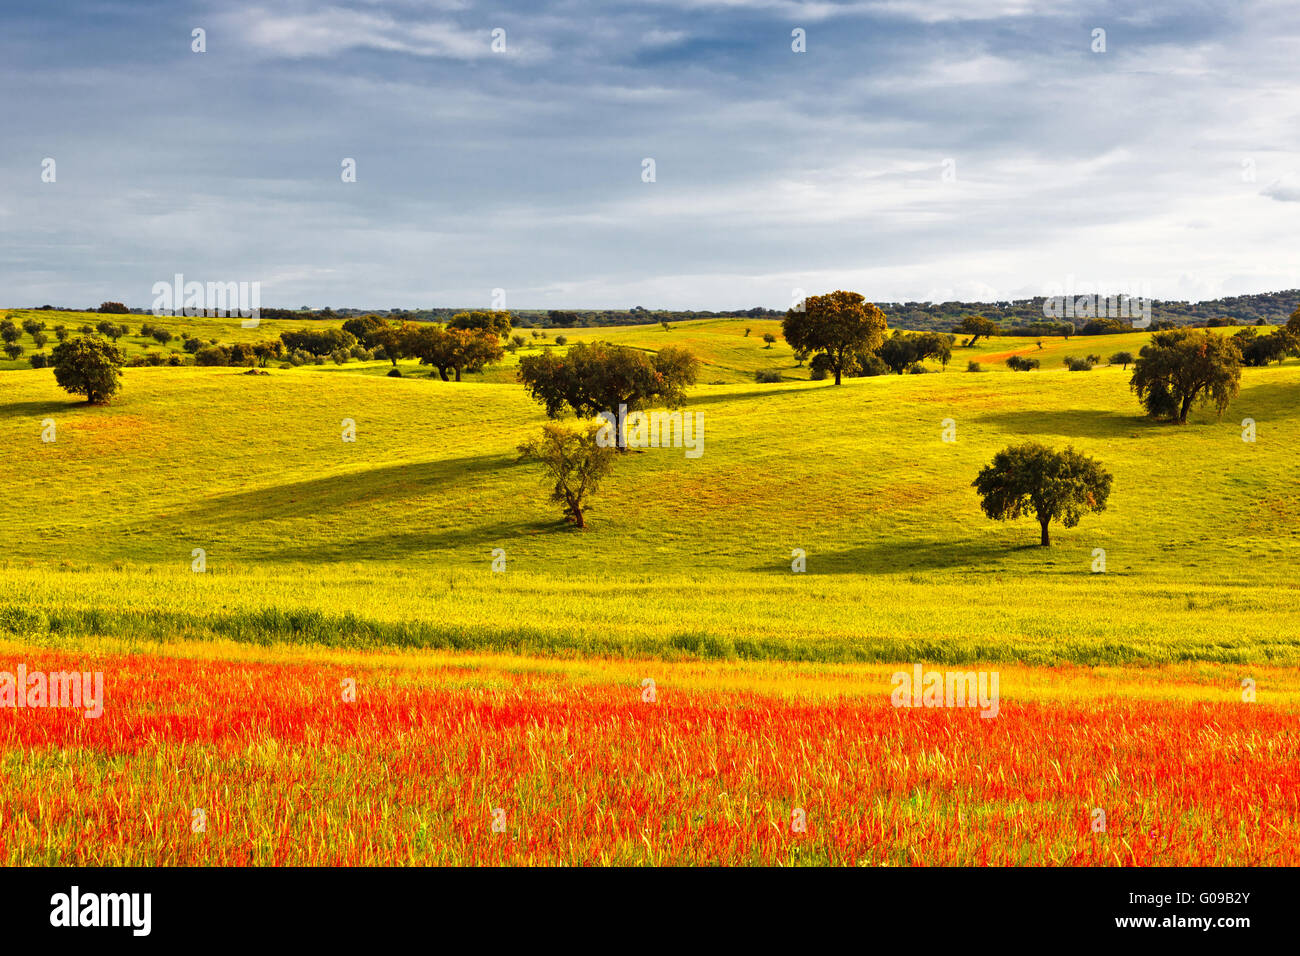 Greenfield at the beginning of spring. - Stock Image